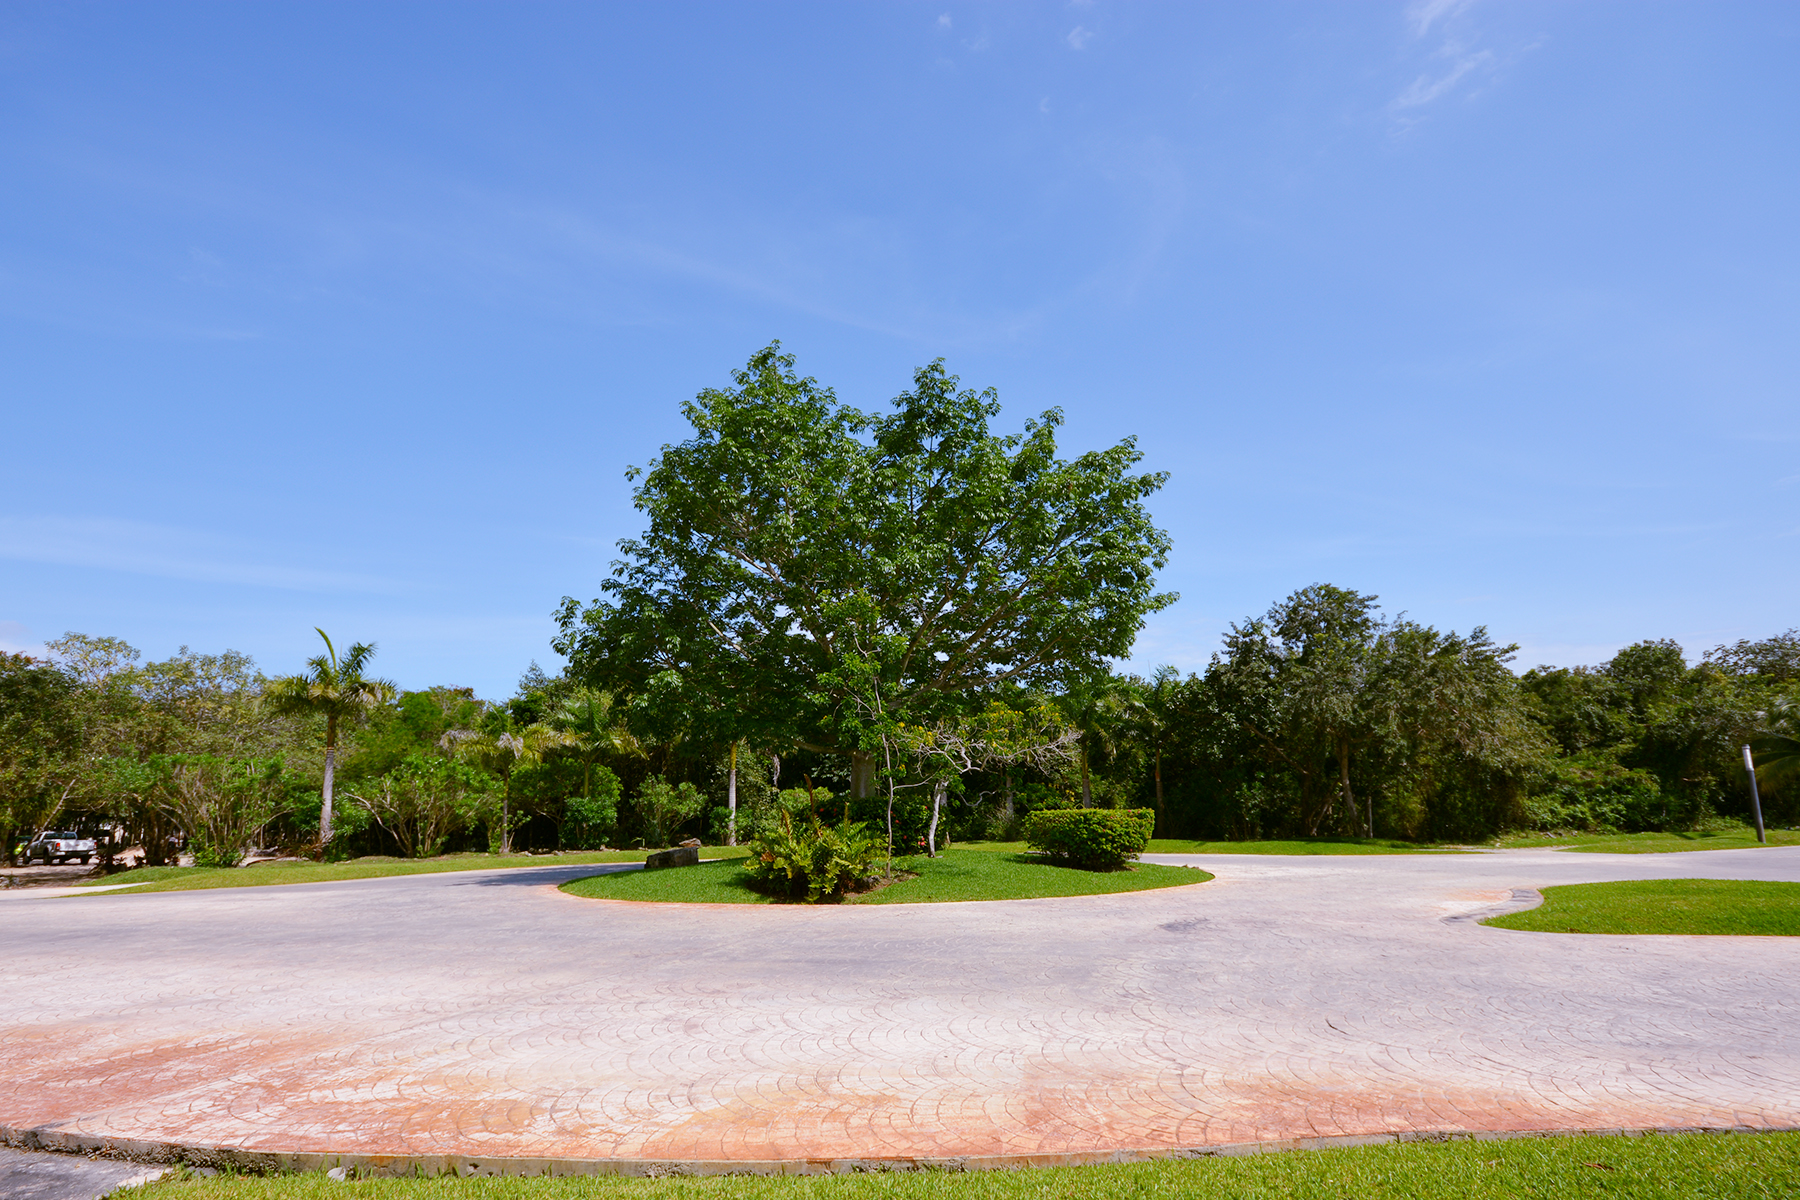 Additional photo for property listing at LUXURY VILLA IN A GATED COMMUNITY Privada Orquídeas Selvamar Playa Del Carmen, Quintana Roo 77710 Mexico